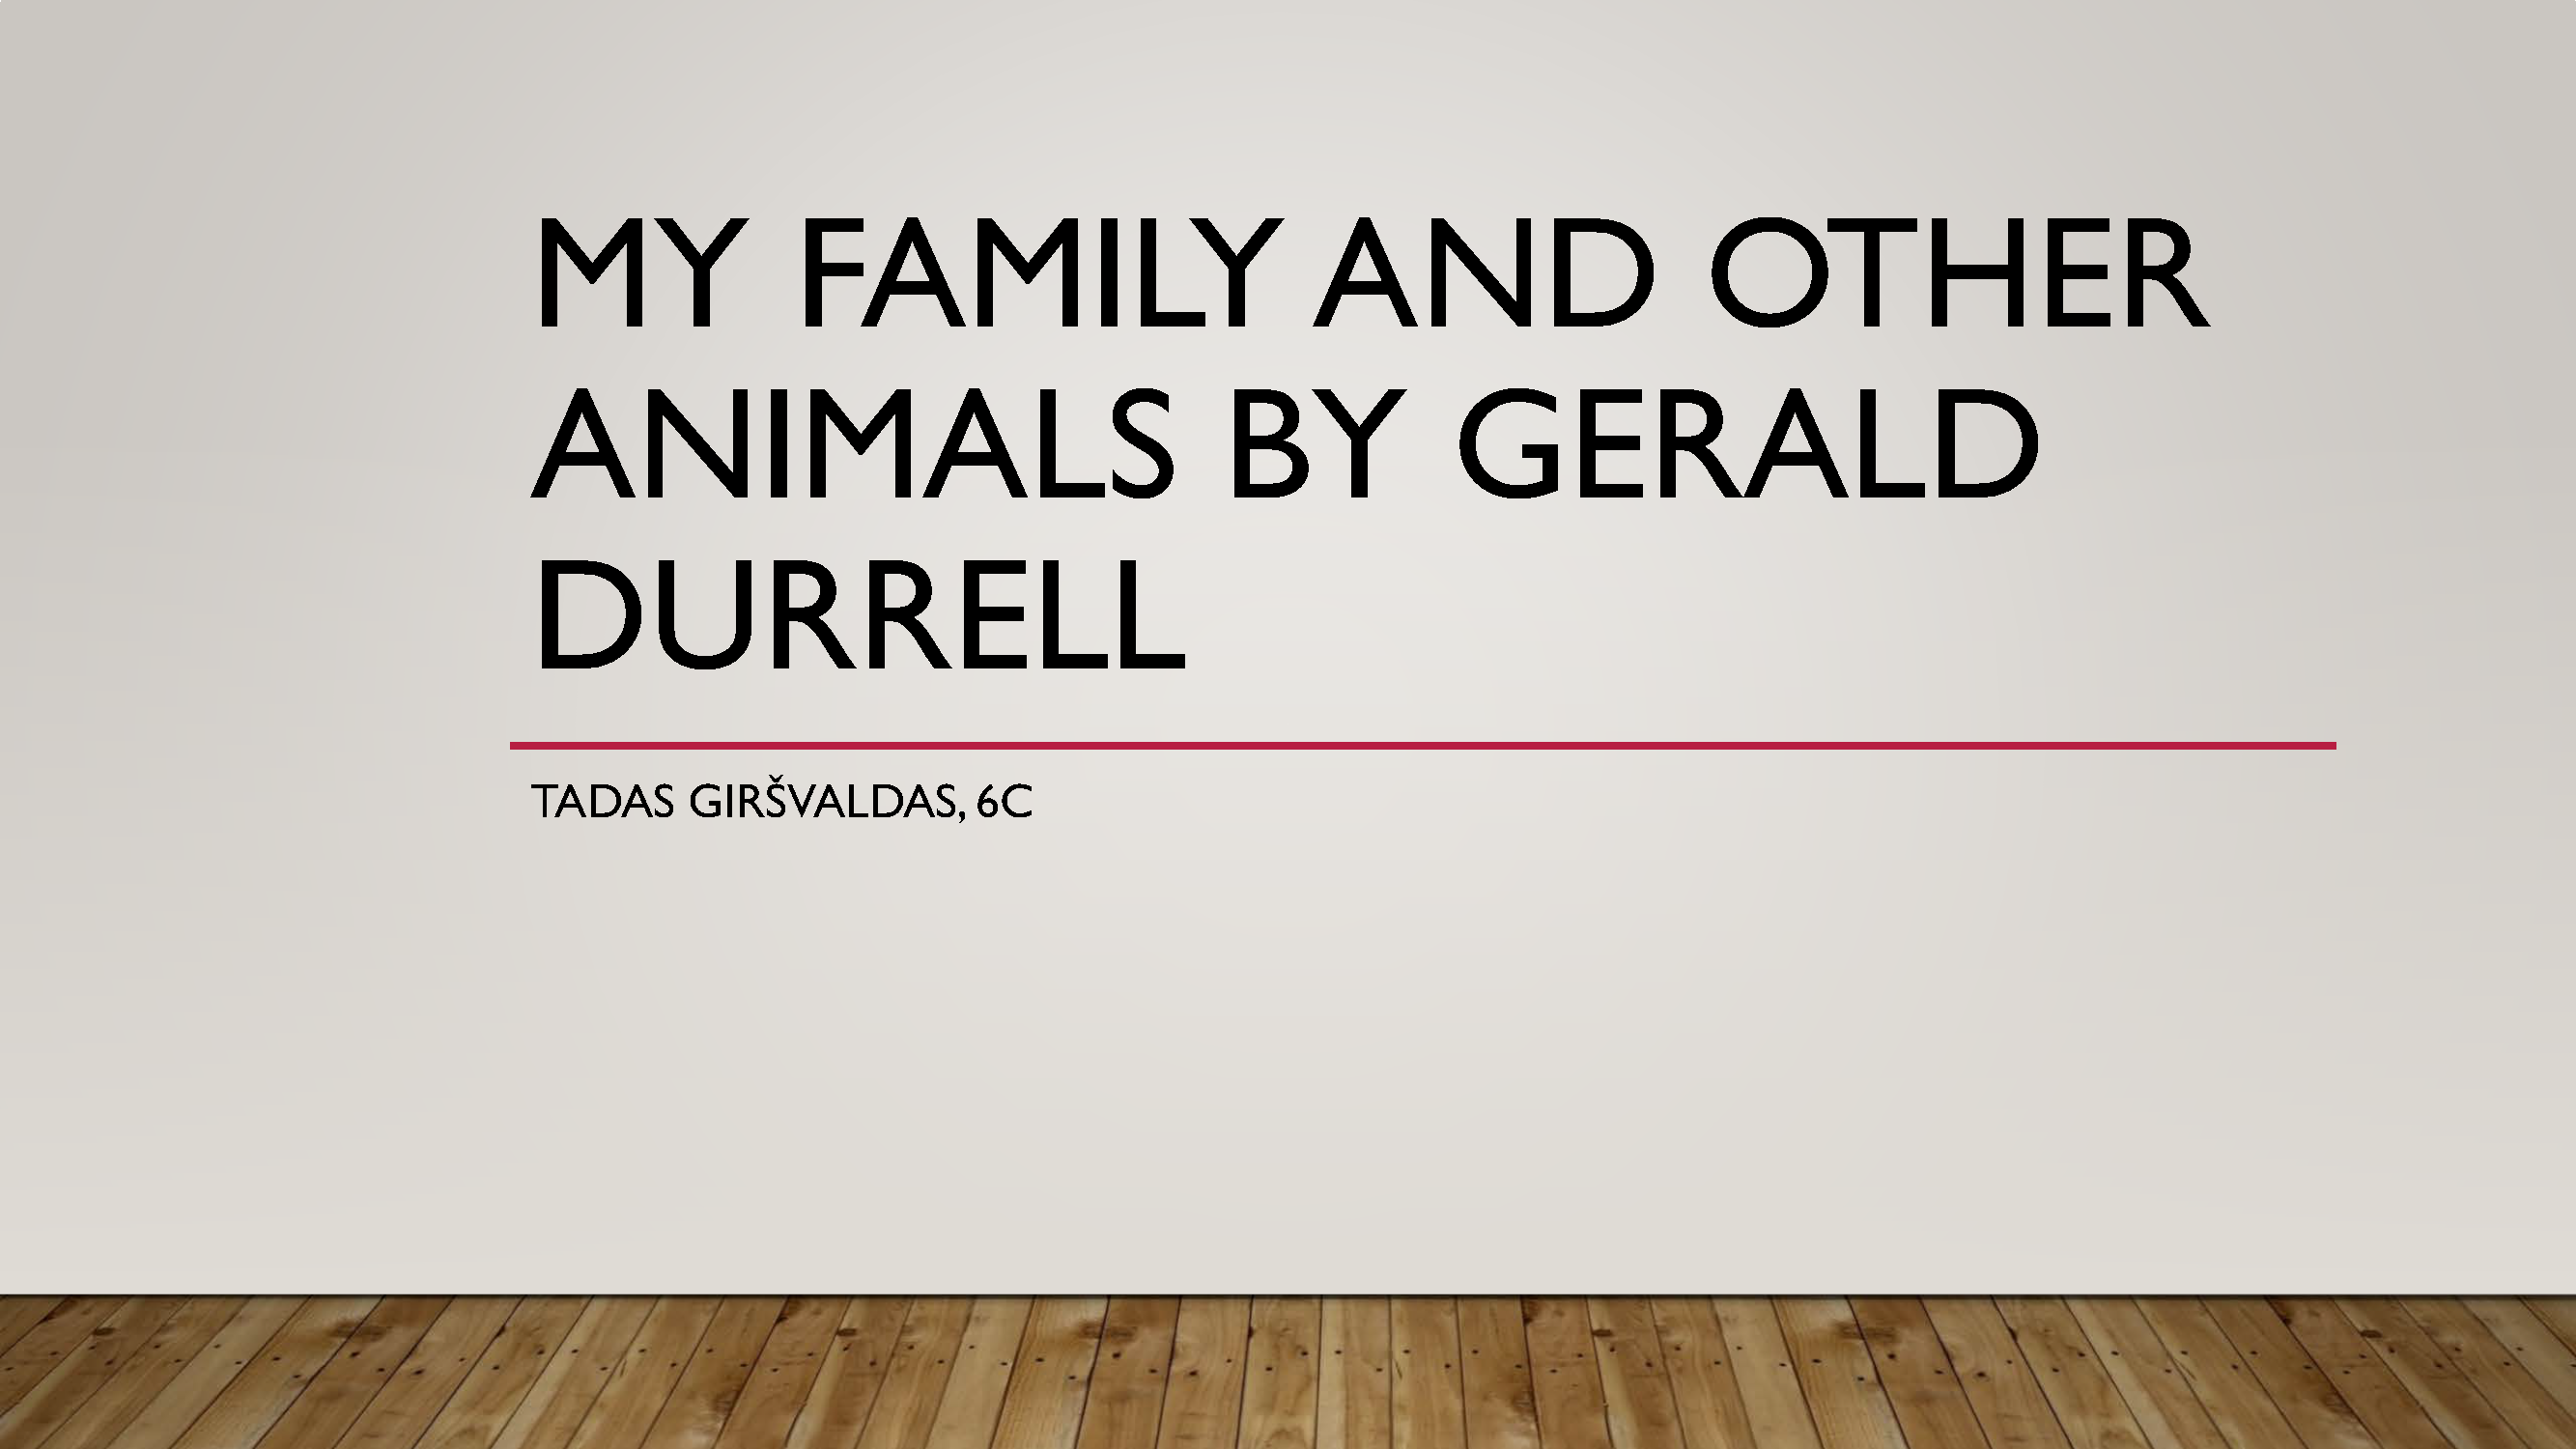 My-Family-and-other-Animals-by-Gerald-Durrell-1.1_Page_1